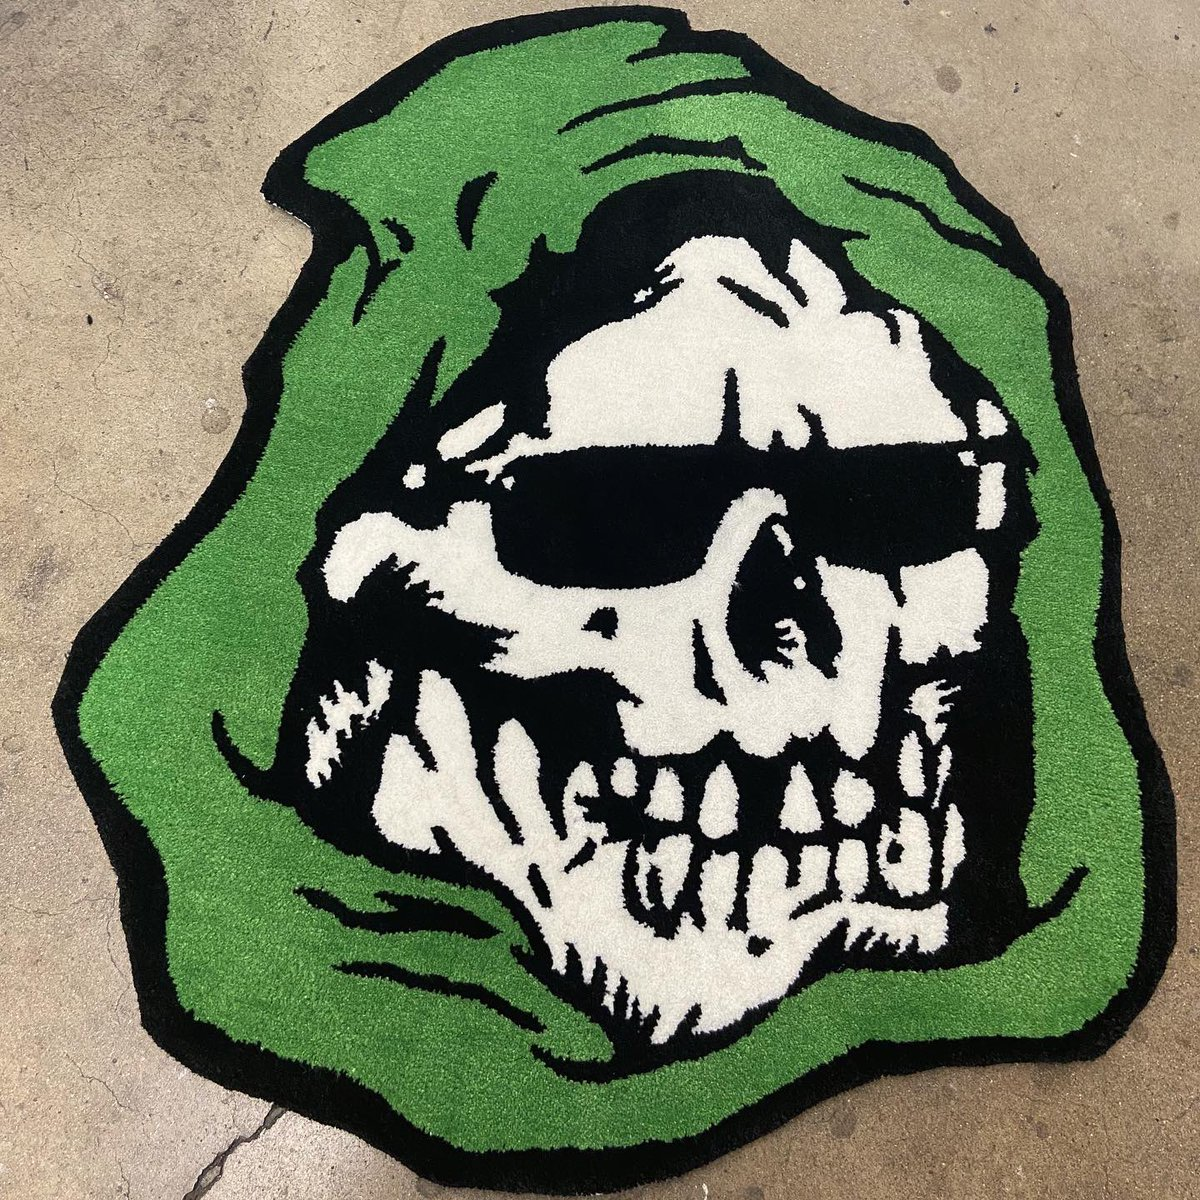 The Chill Reaper rug is now available in our online store! mishkanyc.com/products/chill…